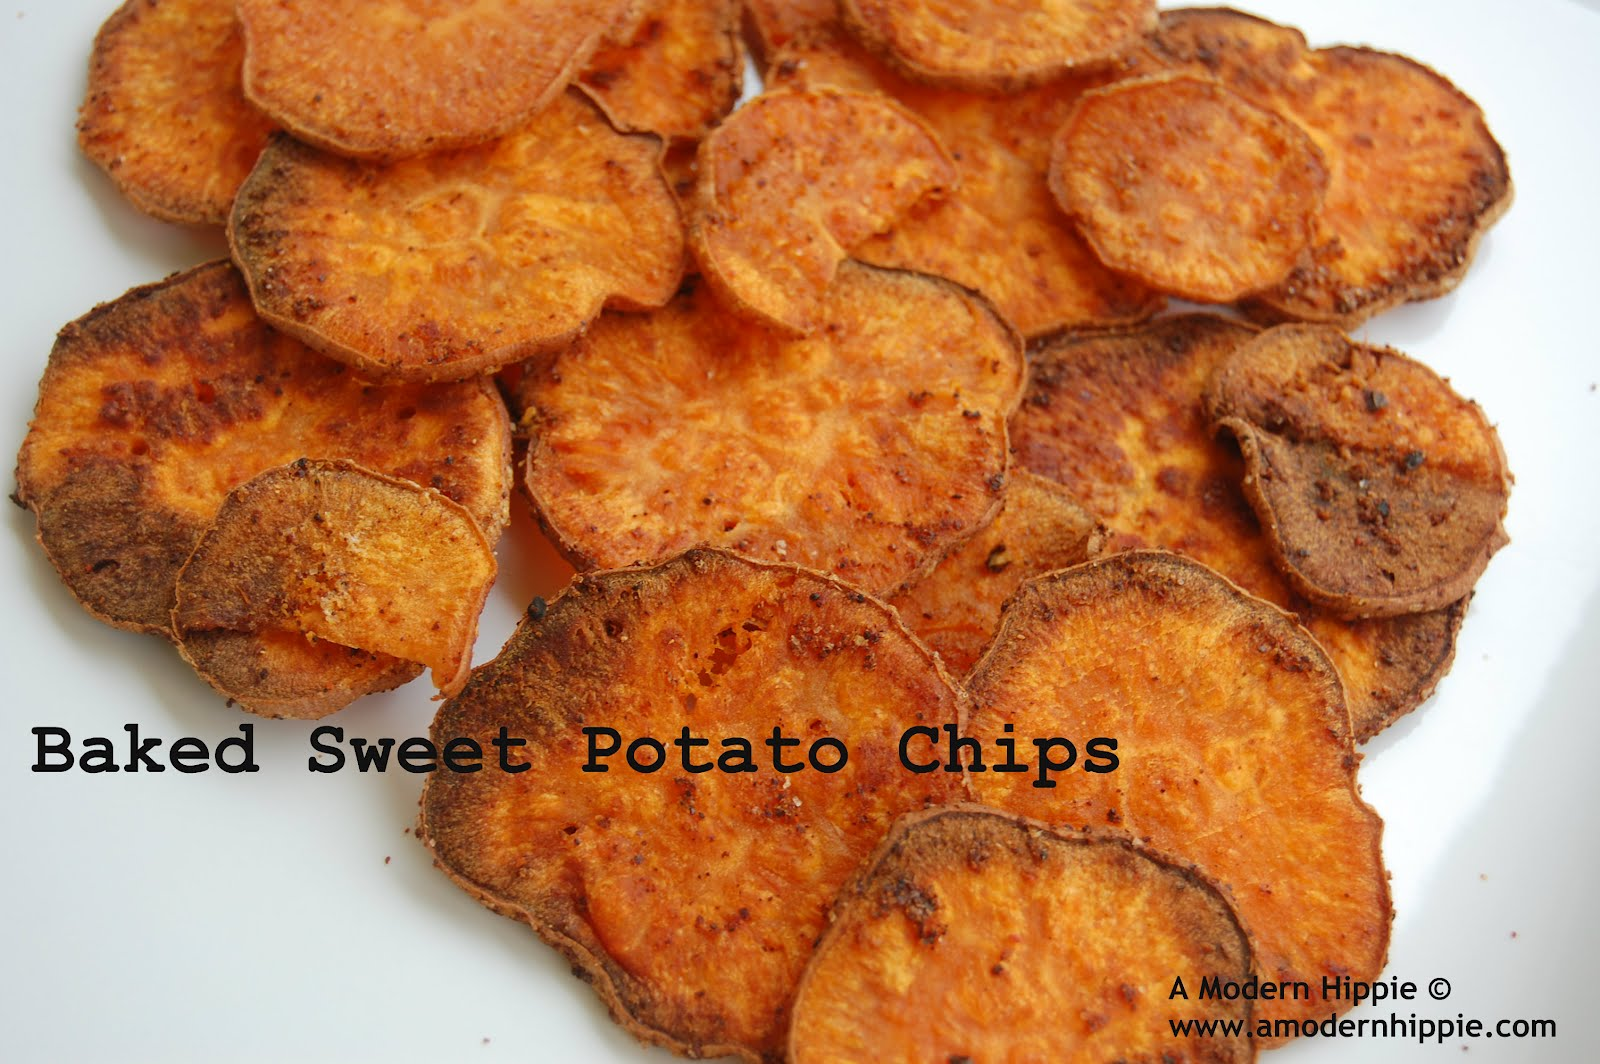 ... salty to eat well i found a great substitute baked sweet potato chips